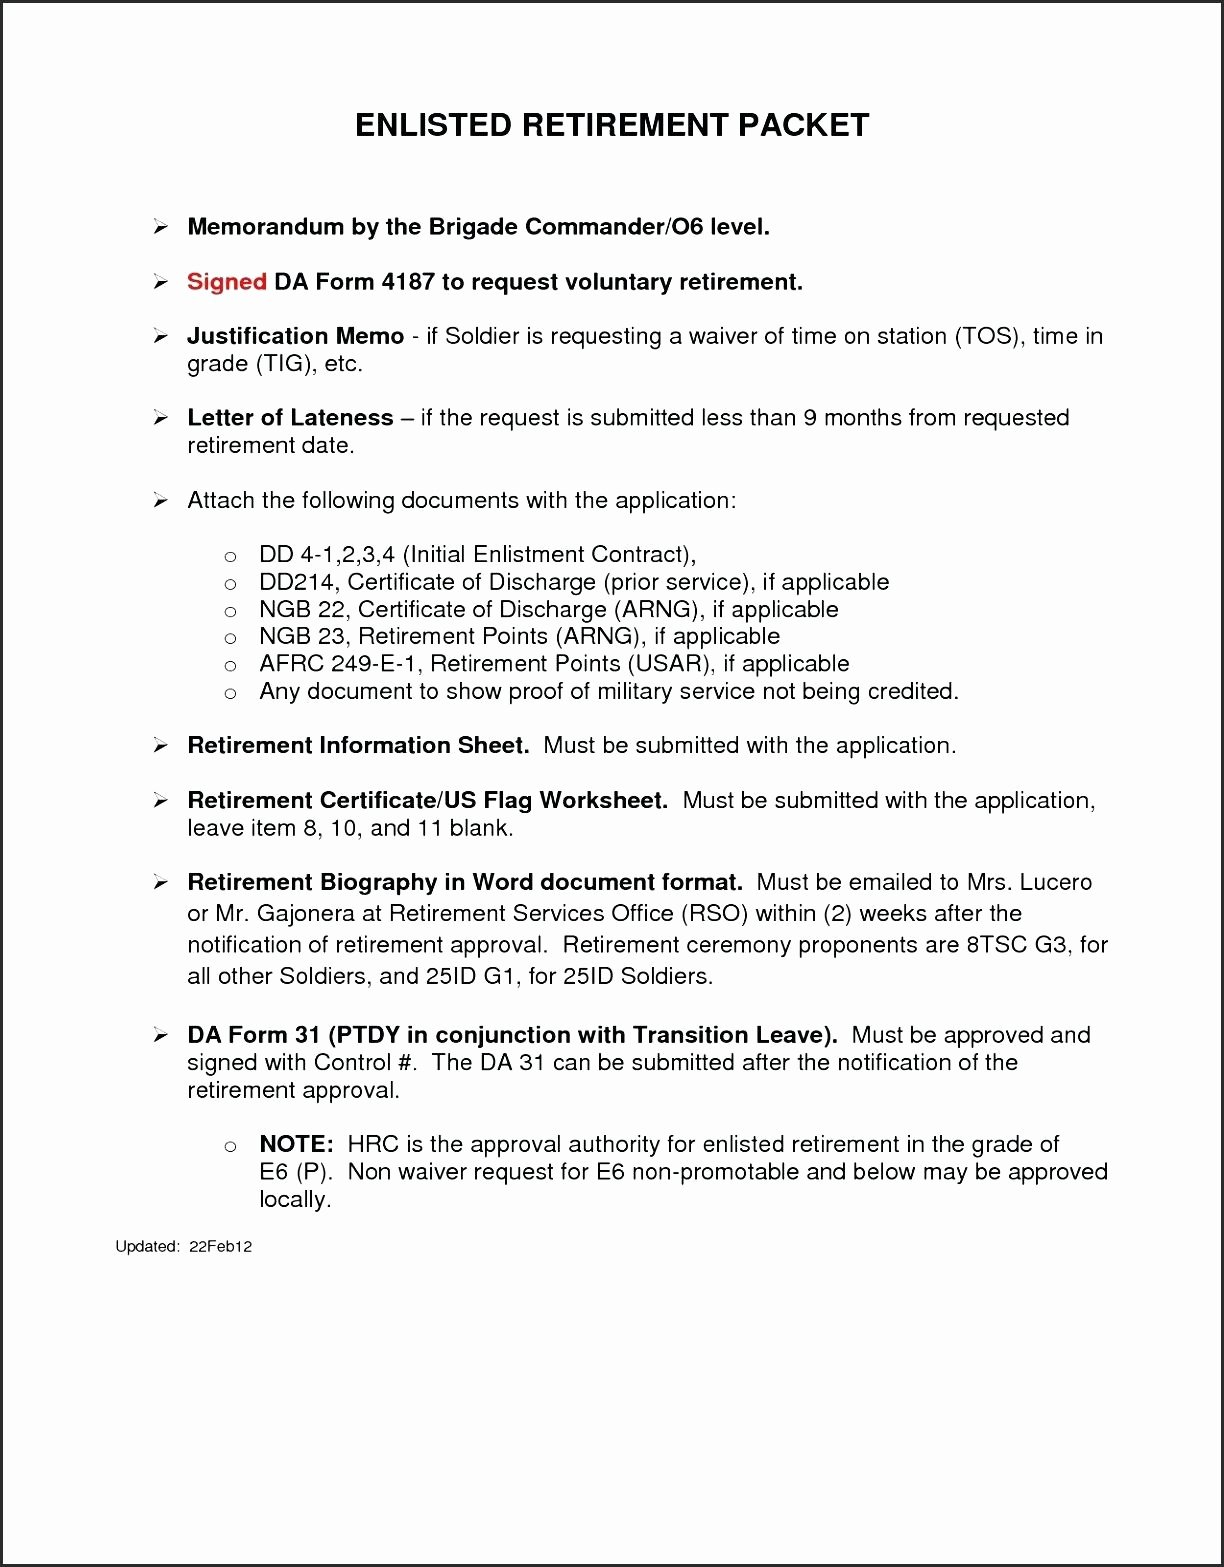 Army Memorandum for Record Template Awesome Army Memo format Template Justification Memorandum for